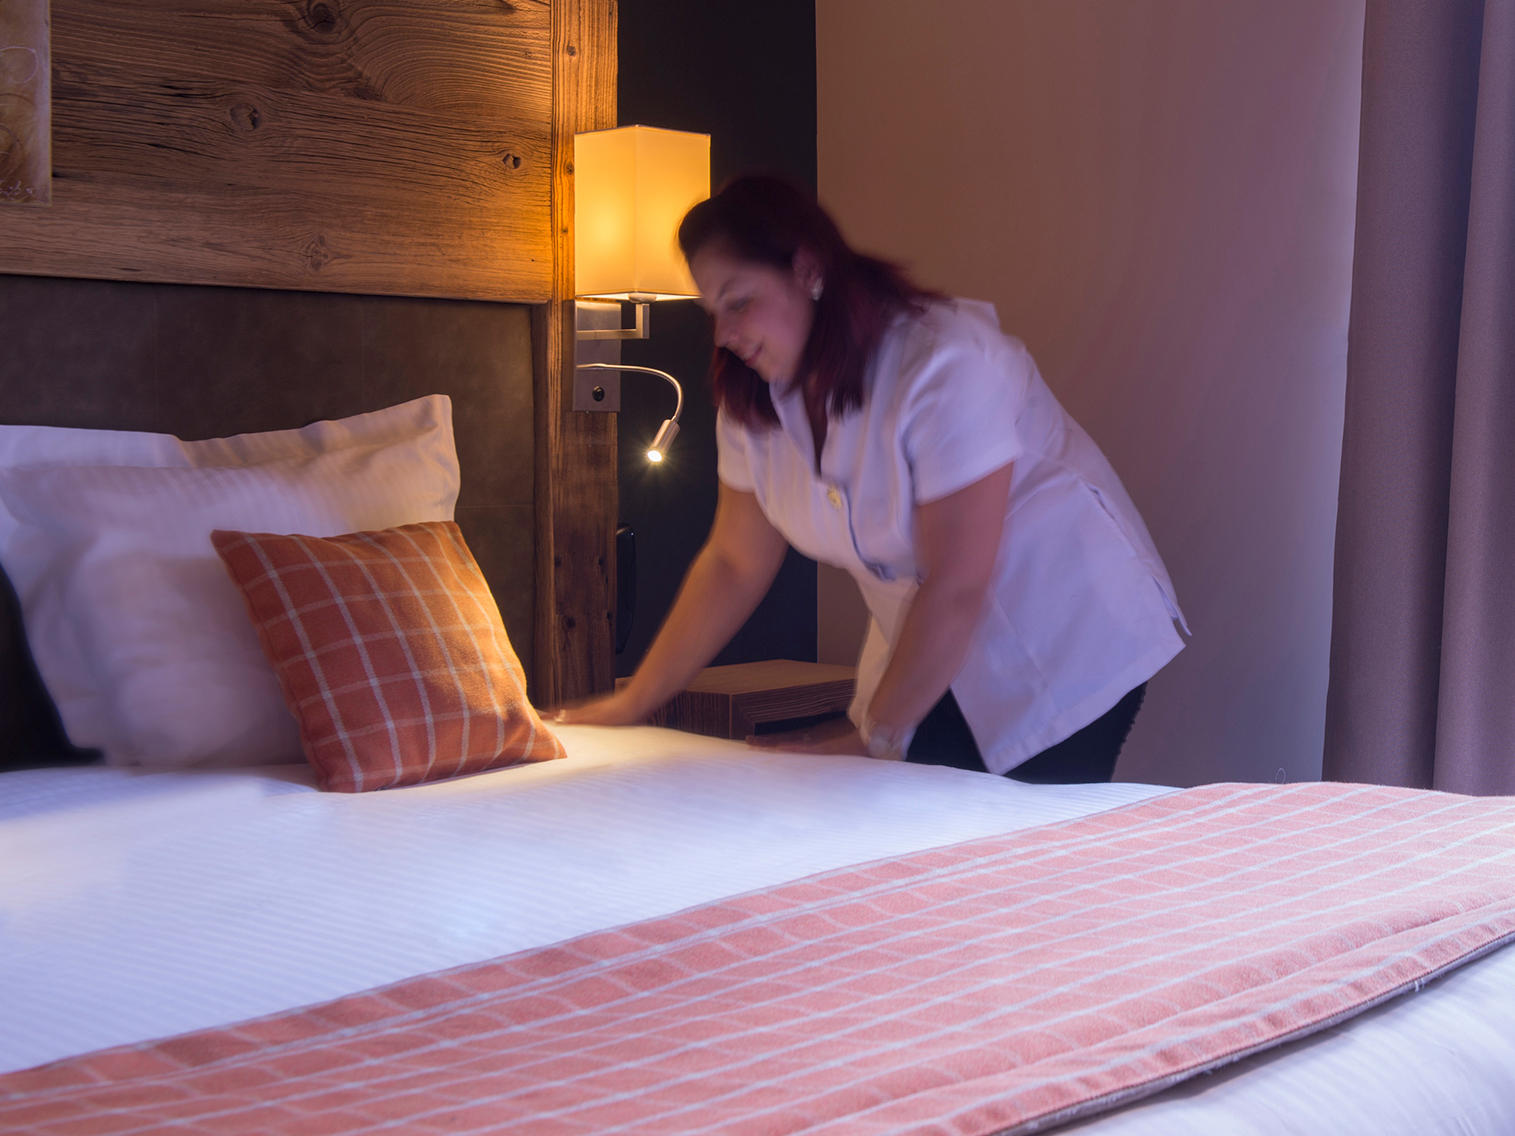 House Keeping Service Making Bed at Hotel Les Gentianettes, The